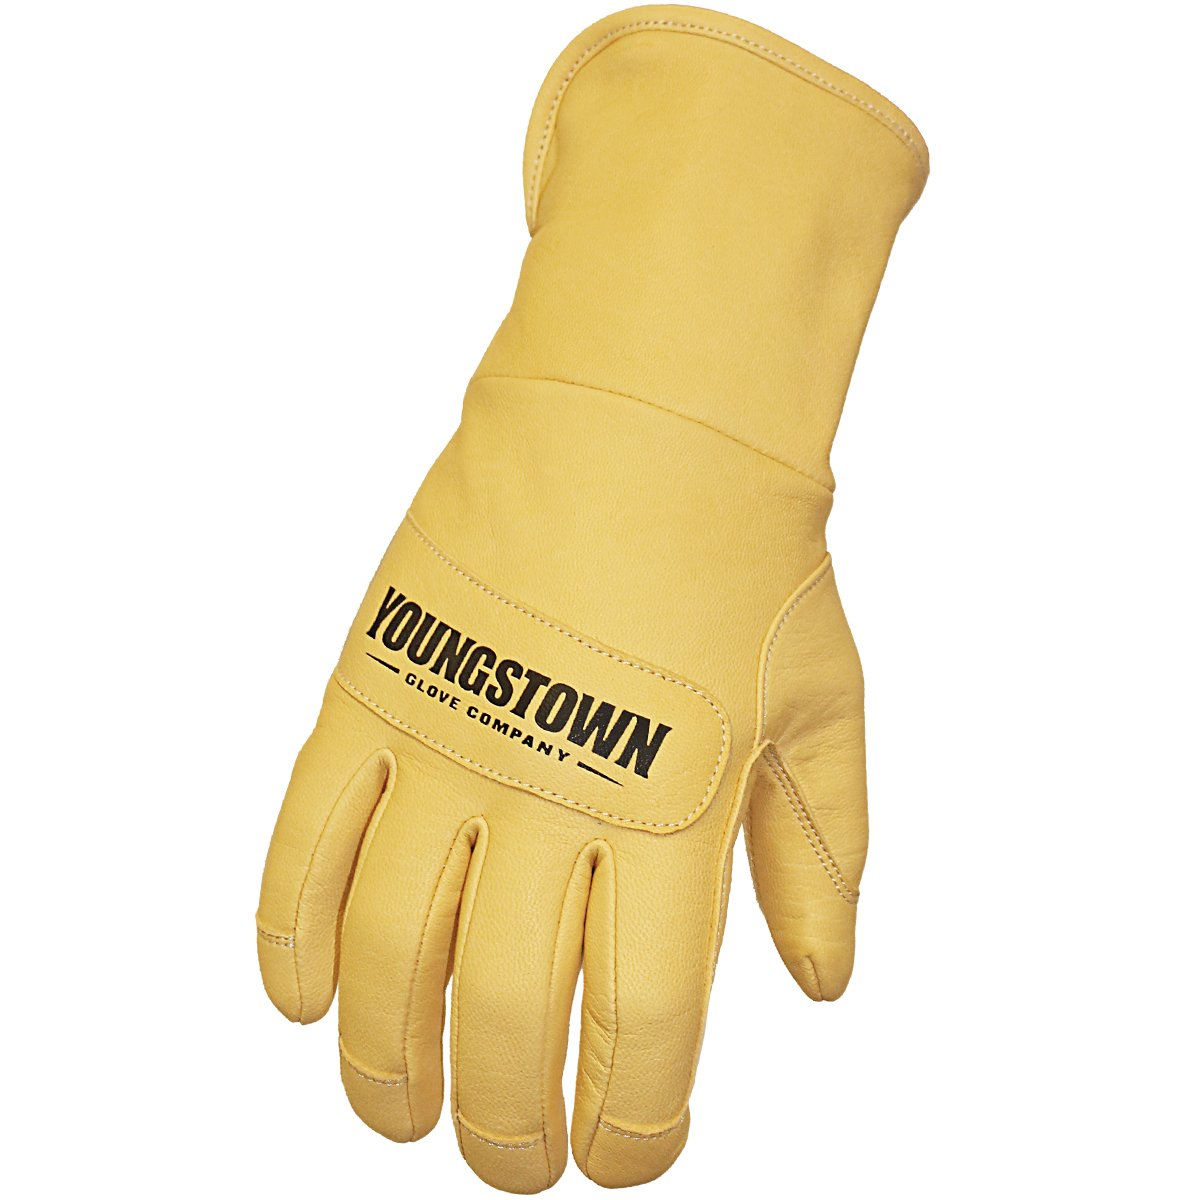 Youngstown Glove 11-3245-60-L Leather Utility Plus gloves, Large